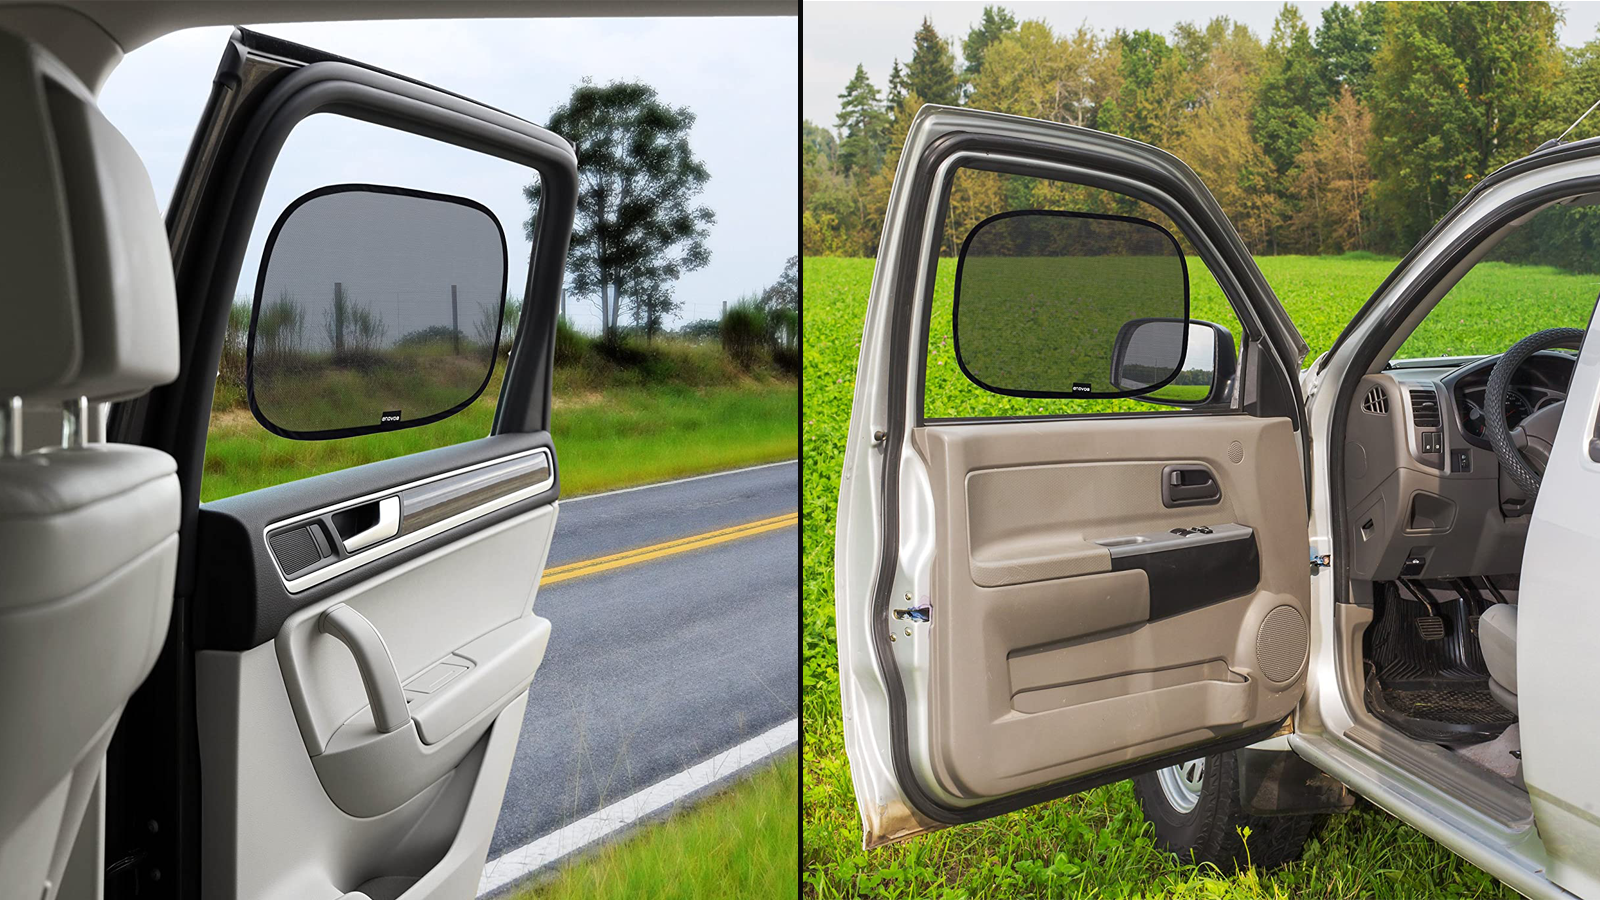 Use These Cling Sunshades to Reduce the Sun's Glare and UV Rays in Your Car